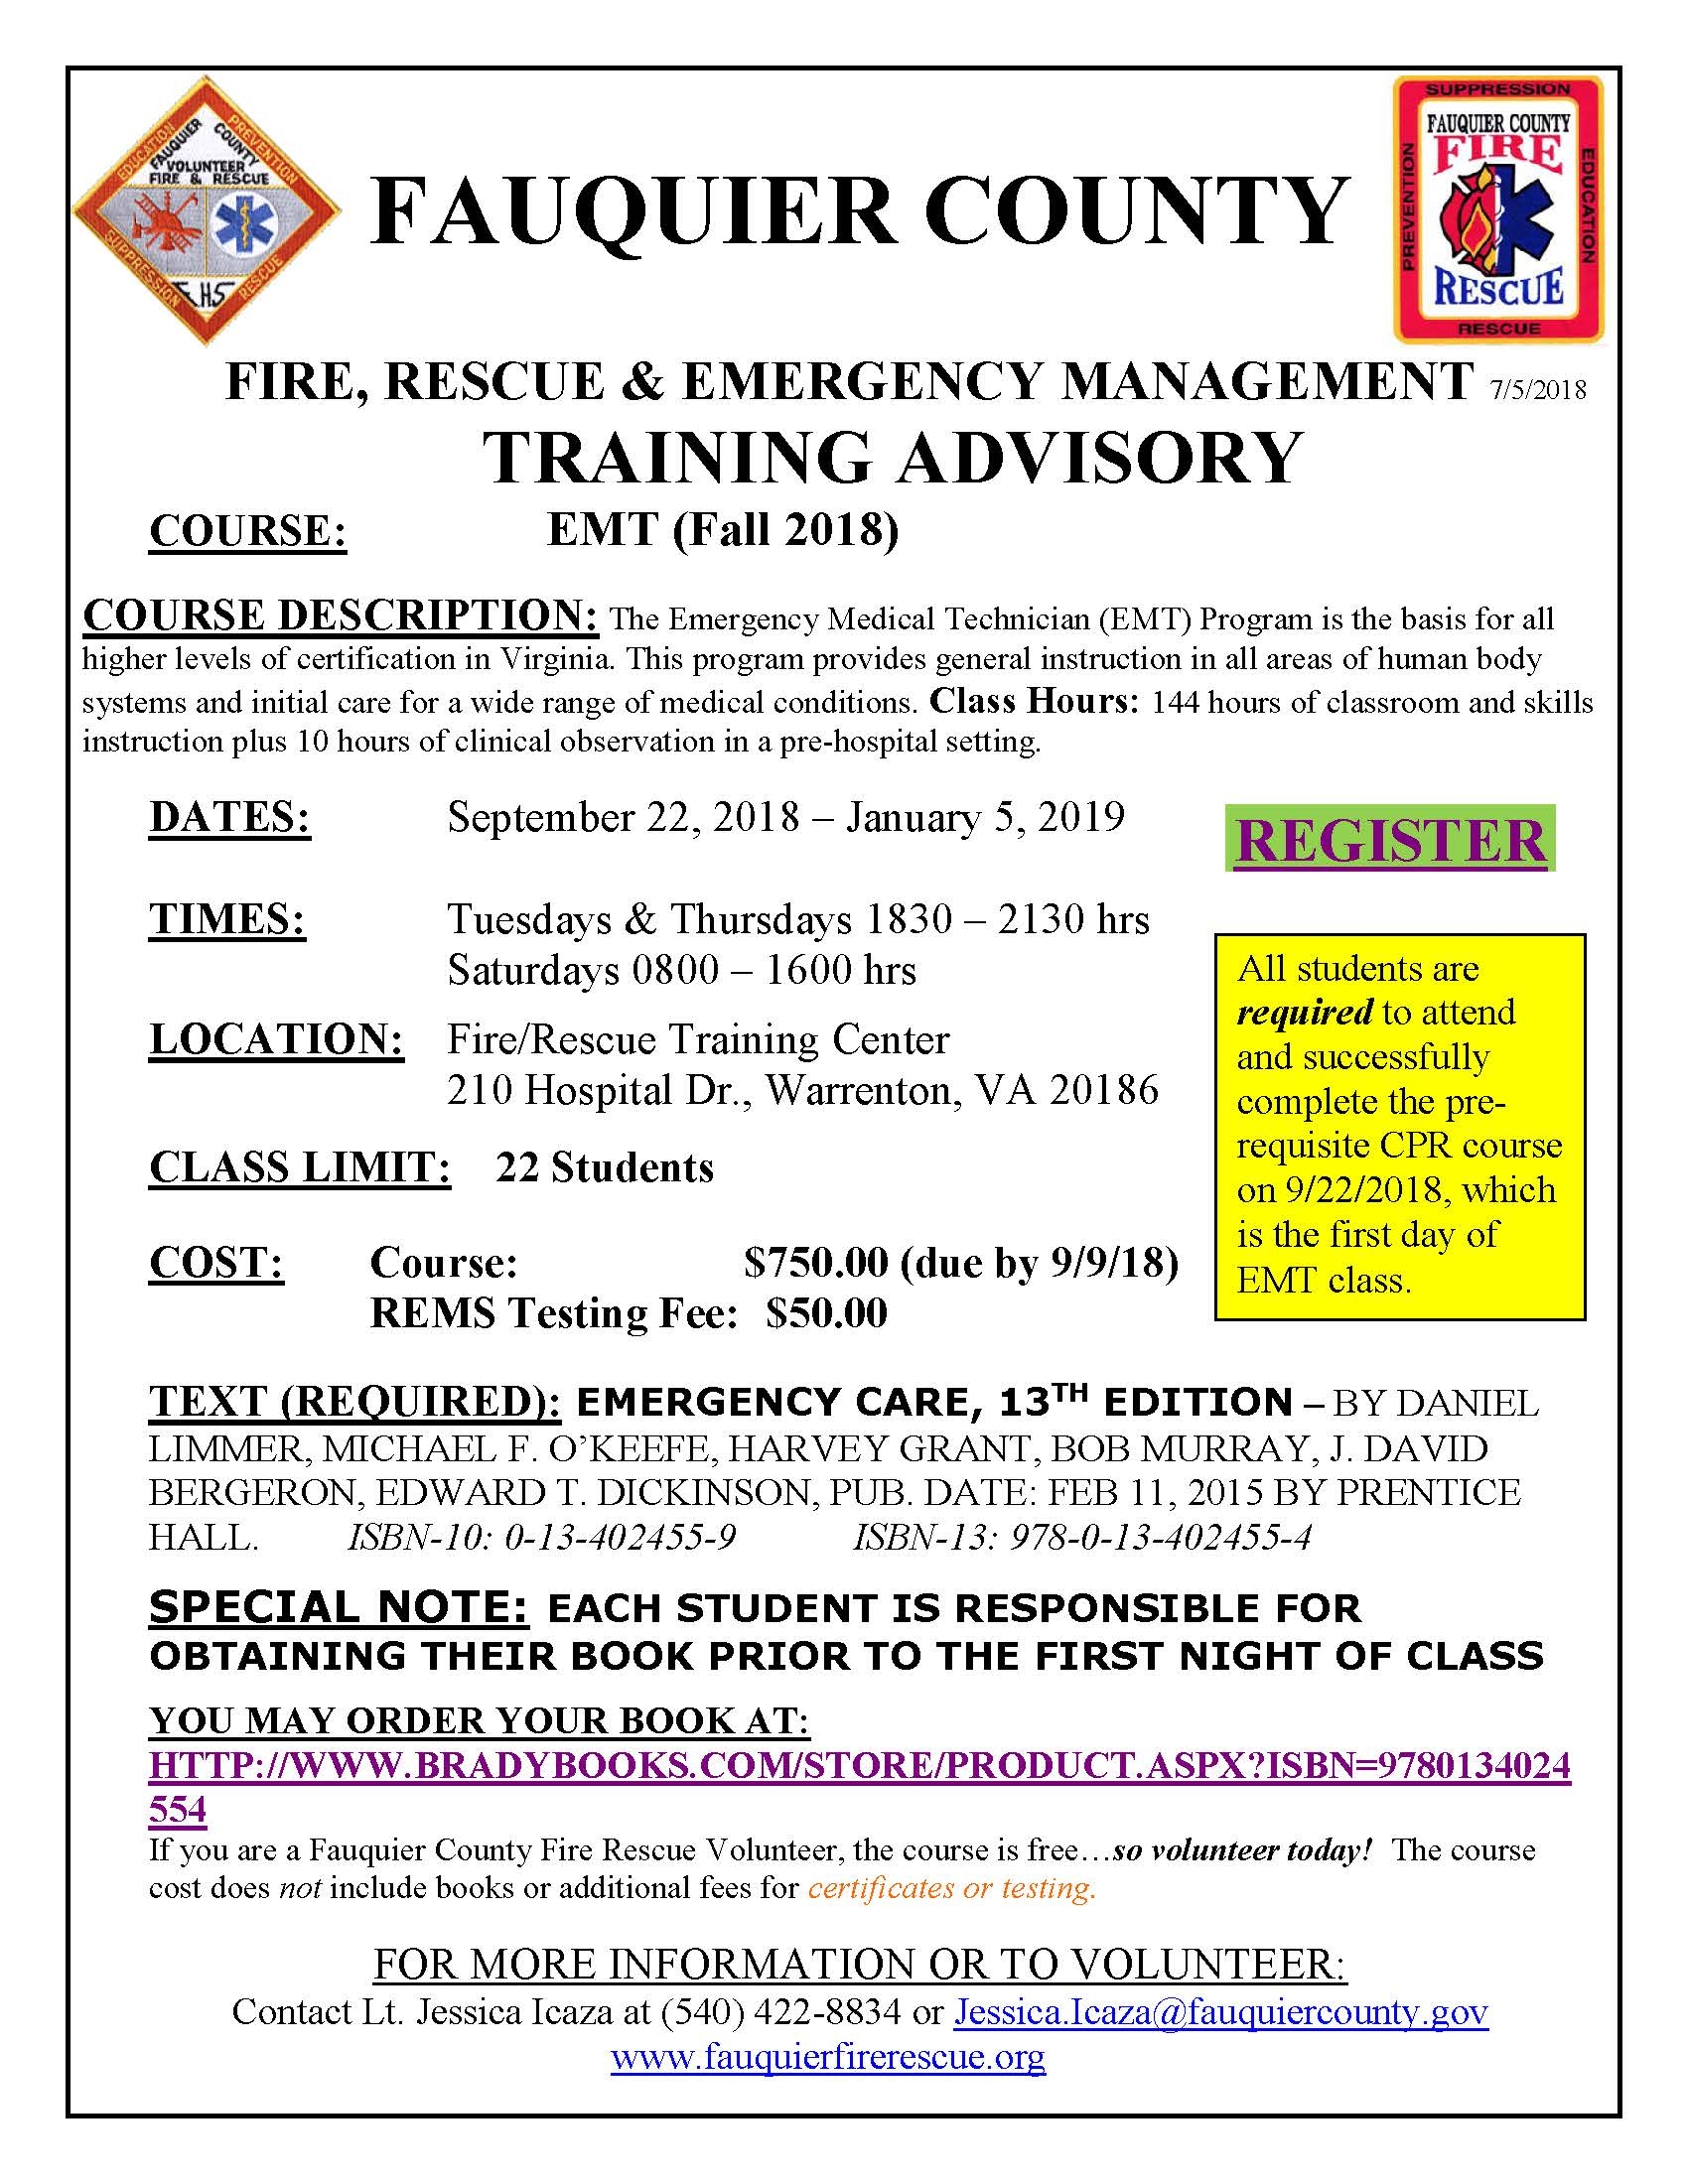 Fauquier county fire rescue fauquier ems training emt course fall 2018 september 22 2018 yelopaper Images